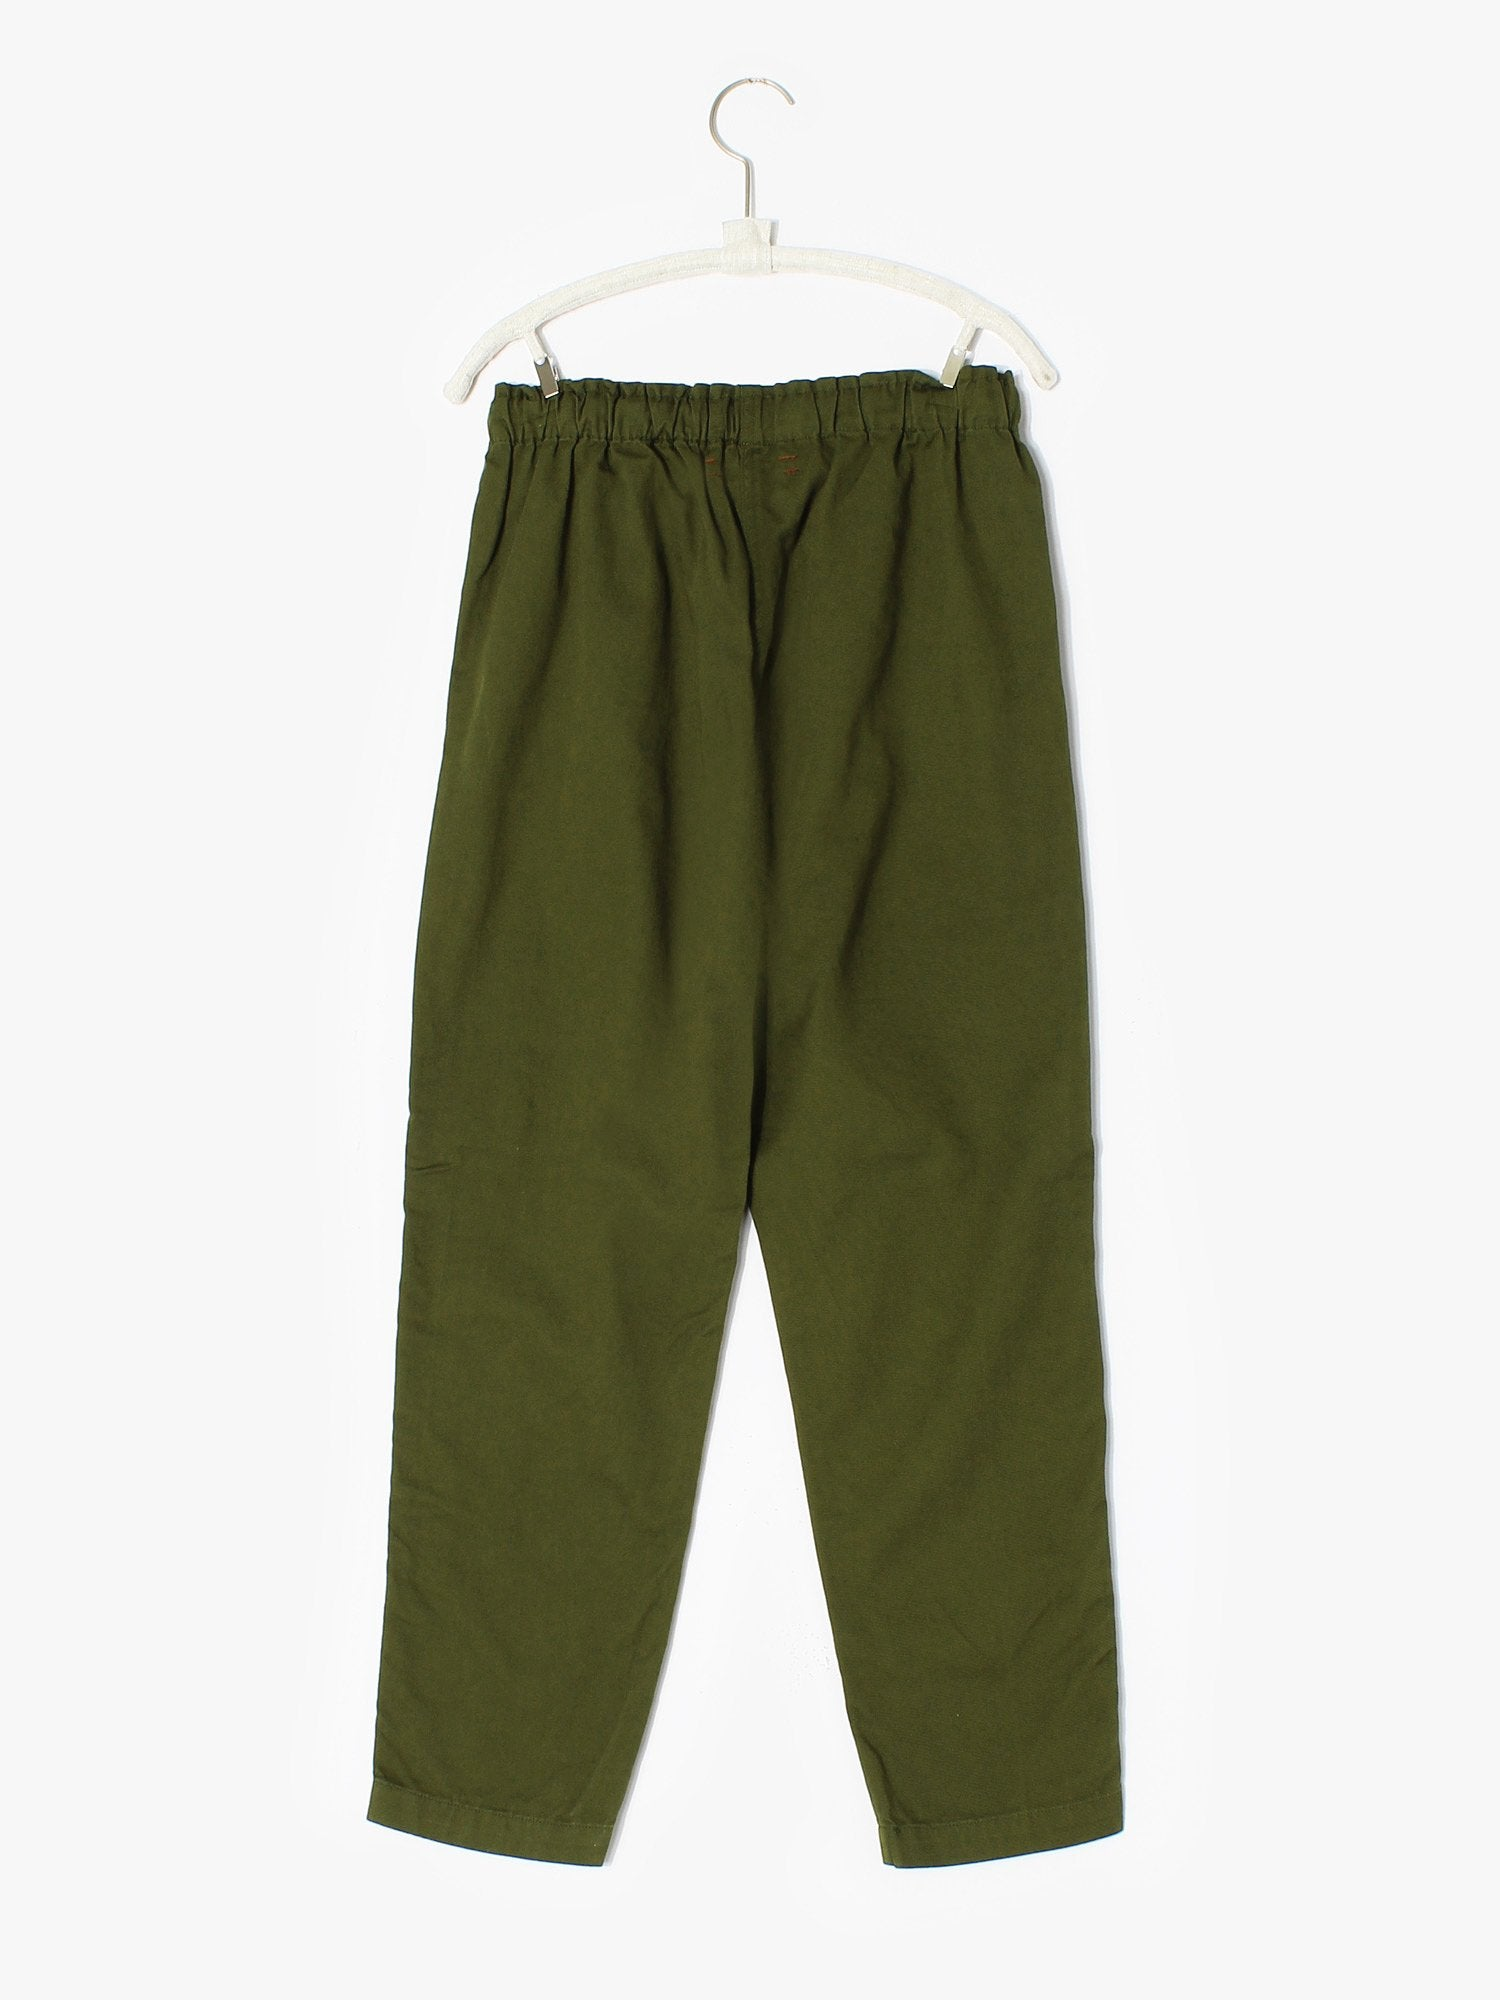 Rex Pant in Olive